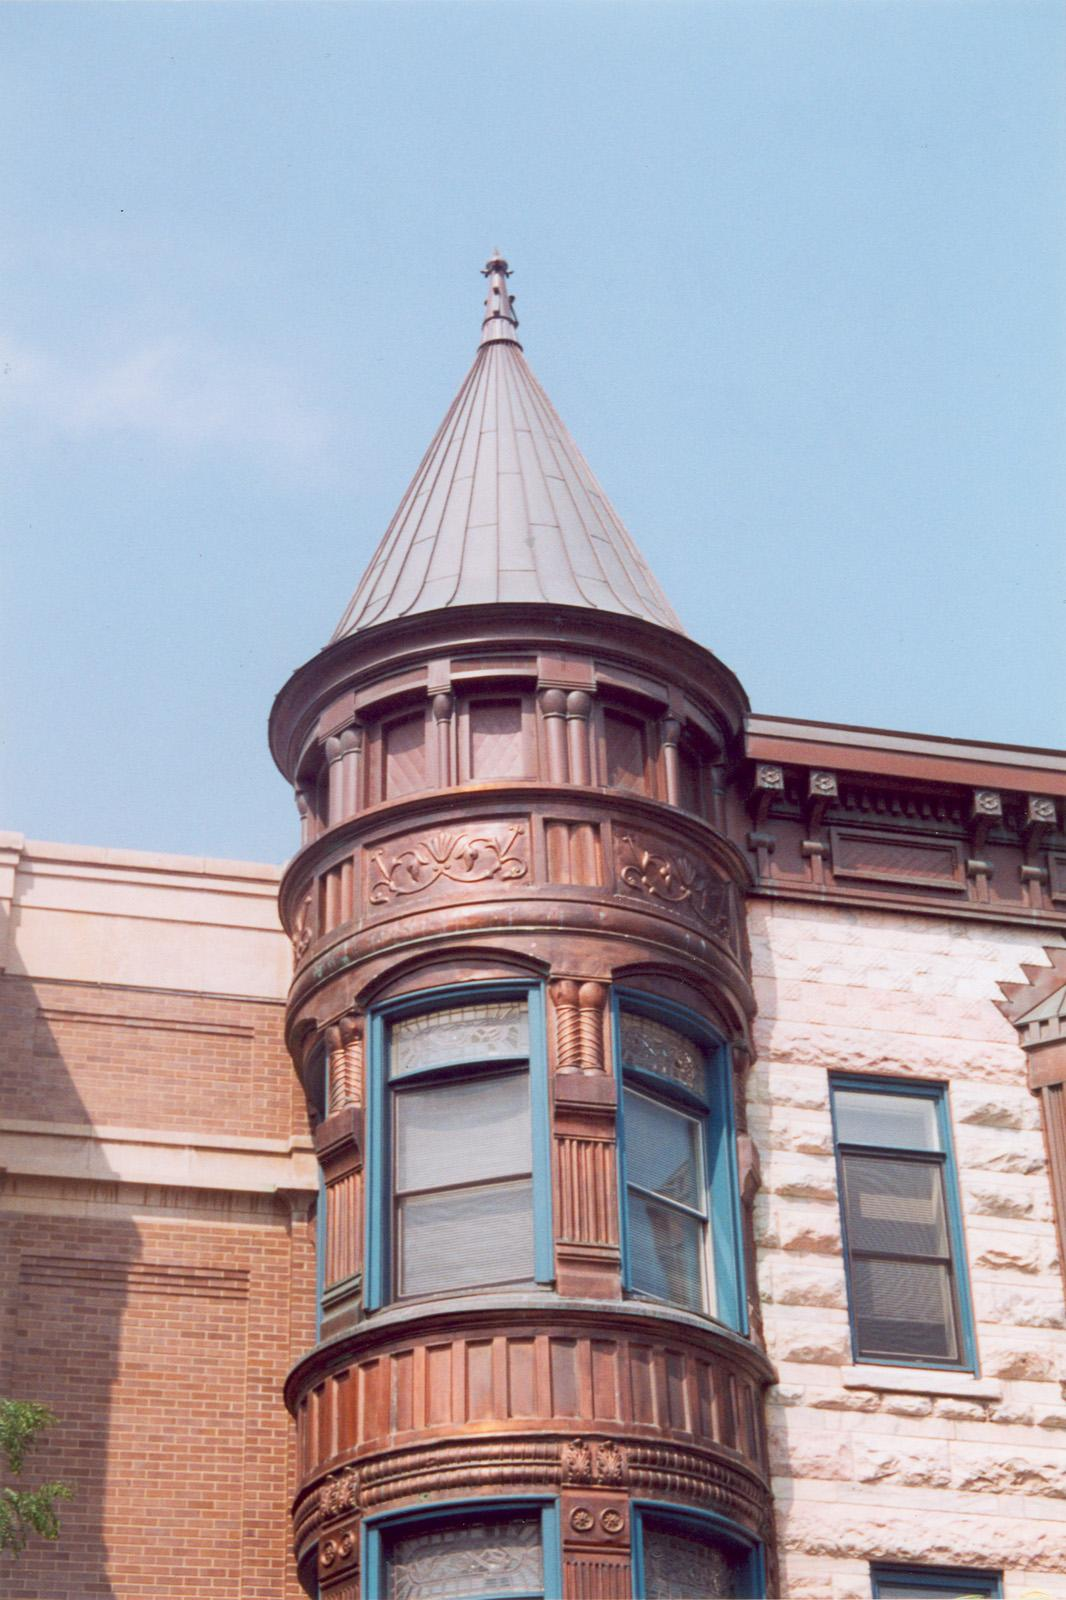 1610 N. Wells St.; Apartment; Commercial building; Detail, turret